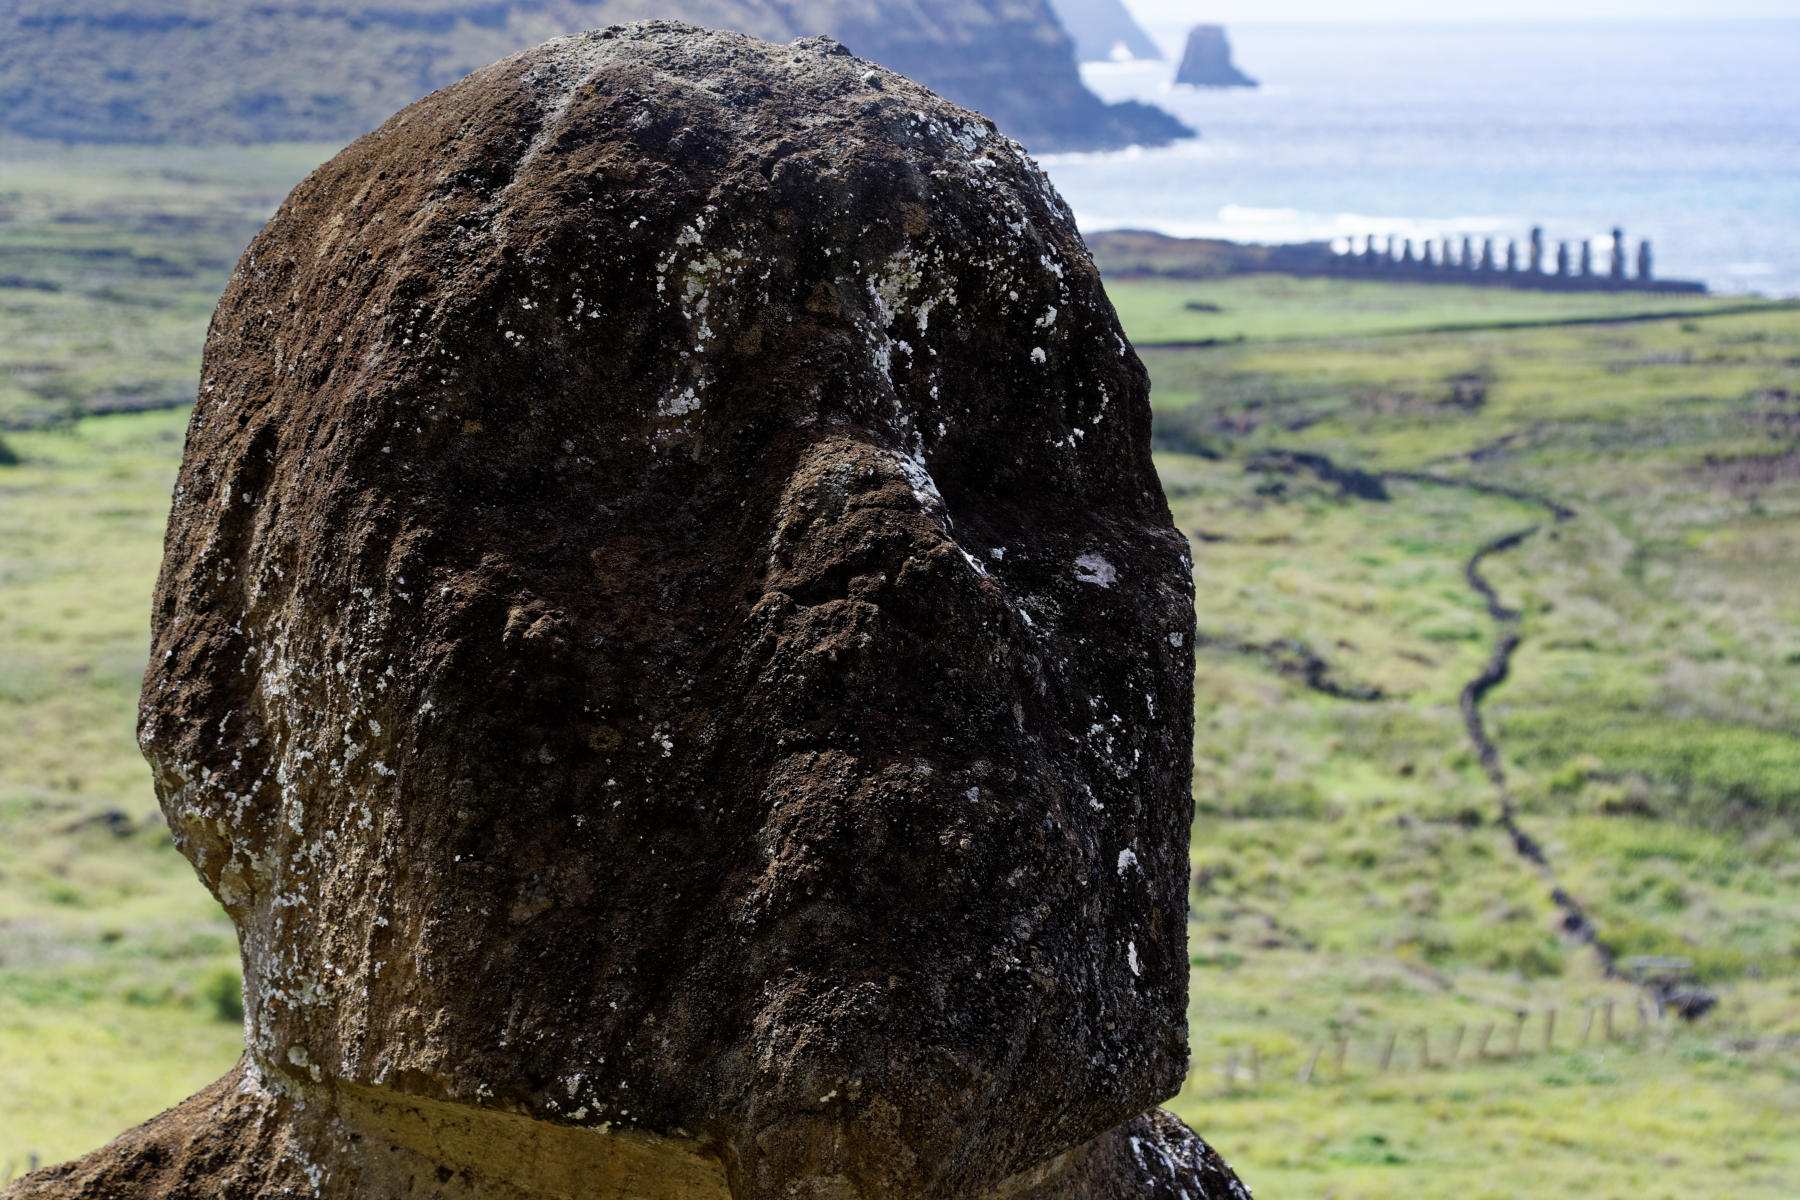 The face of Tukuturi, the kneeling moai